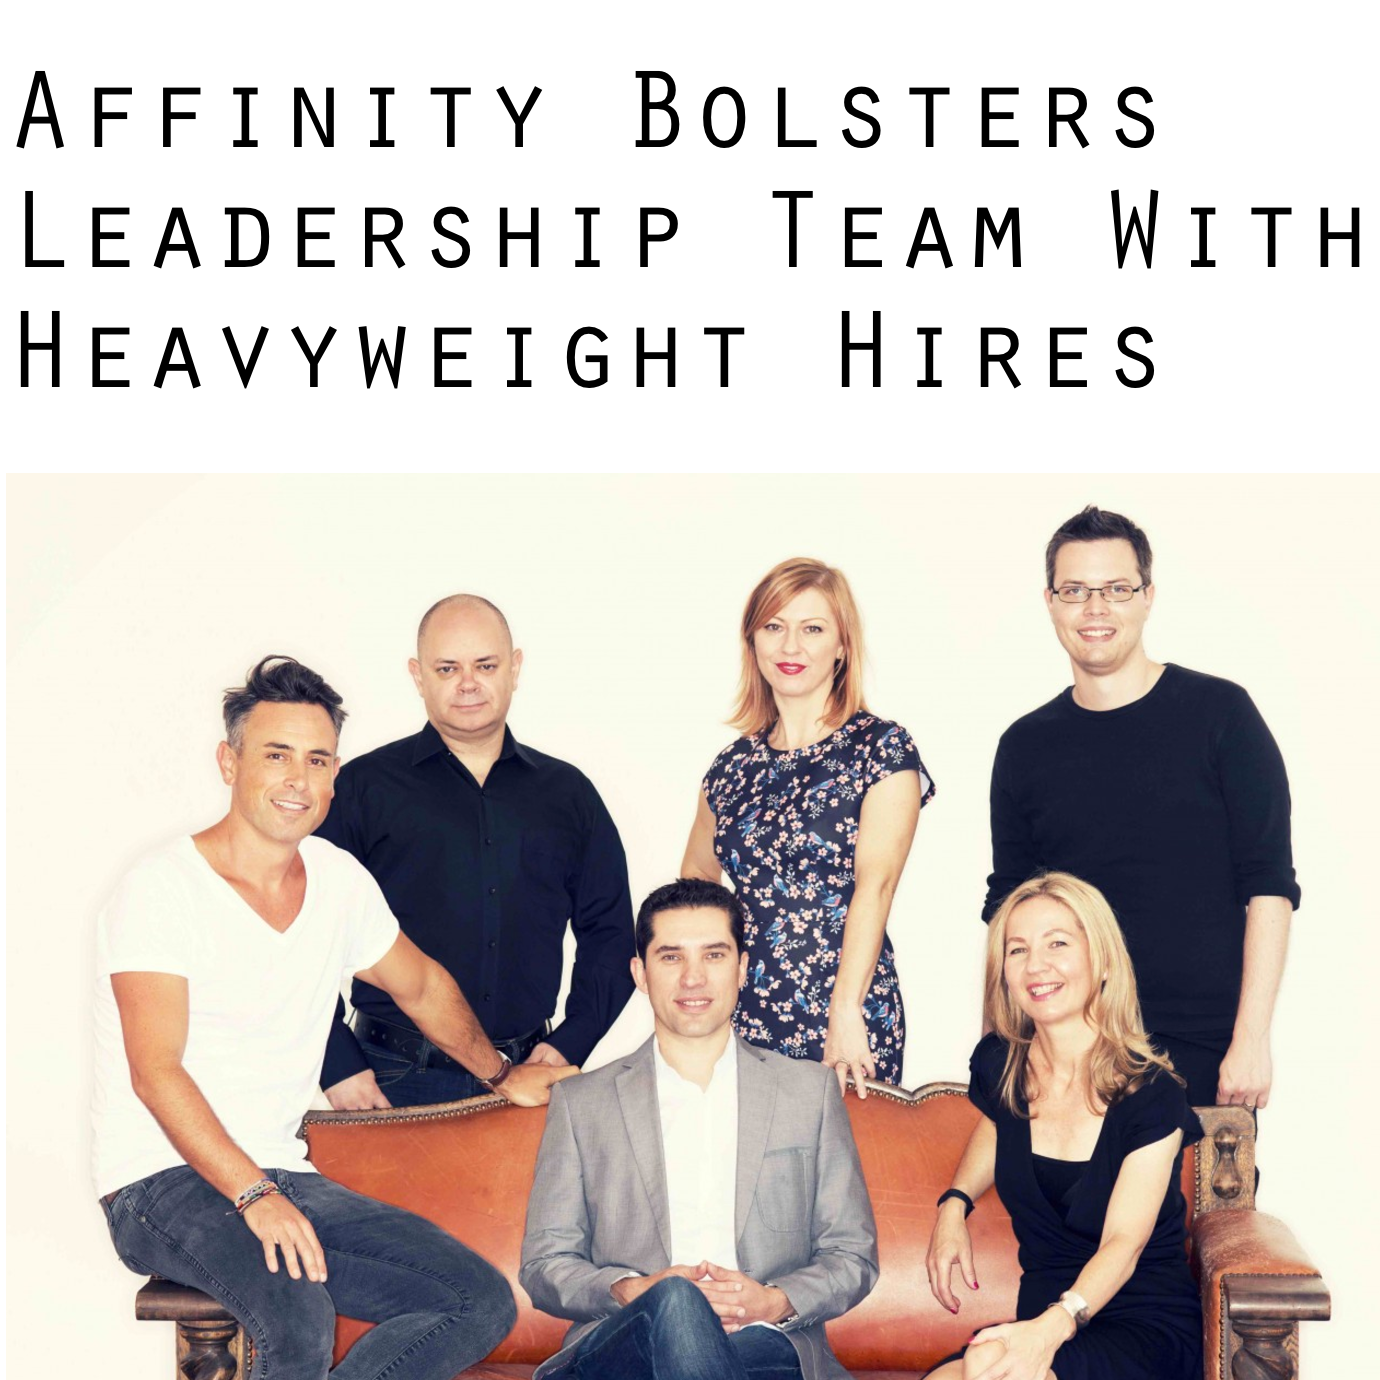 B&T  Affinity Bolsters Leadership Team With Heavyweight Hires